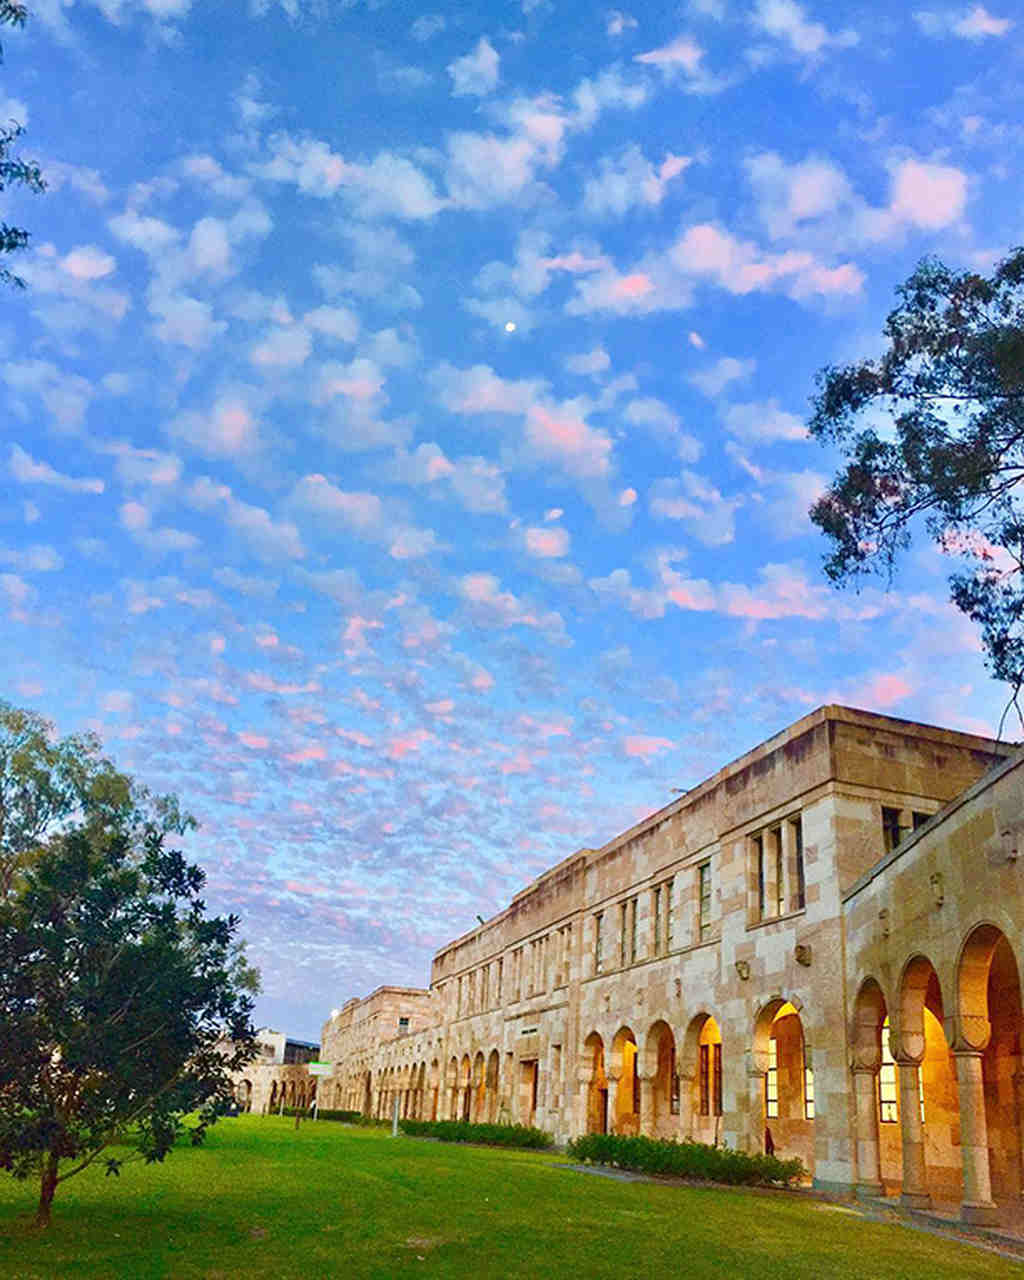 Sky, Building, Property, Cloud, Architecture, Tree, Estate, House, College, City, Stately home, Facade, Mansion, Campus, The University of Queensland, Insight Education Consulting, School